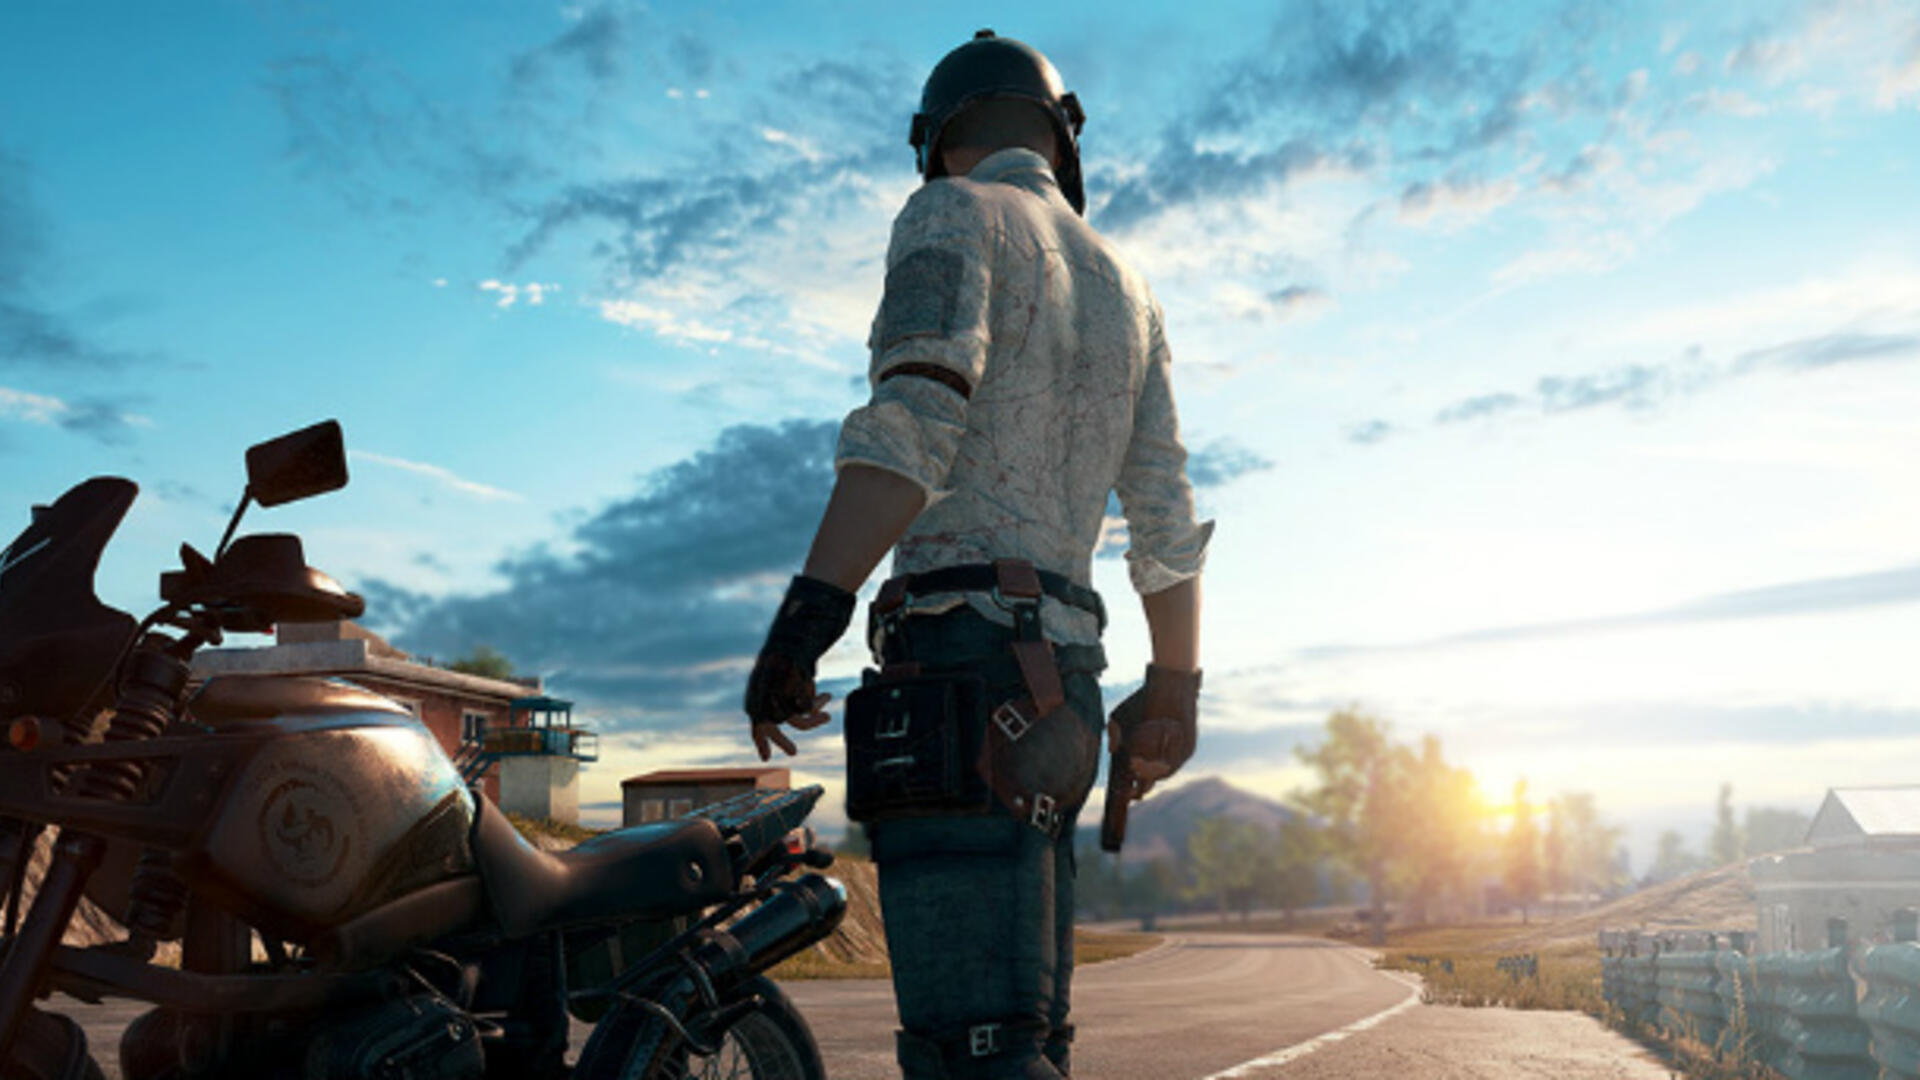 PUBG is Getting an Event Mode, Starting With 8-Person Teams